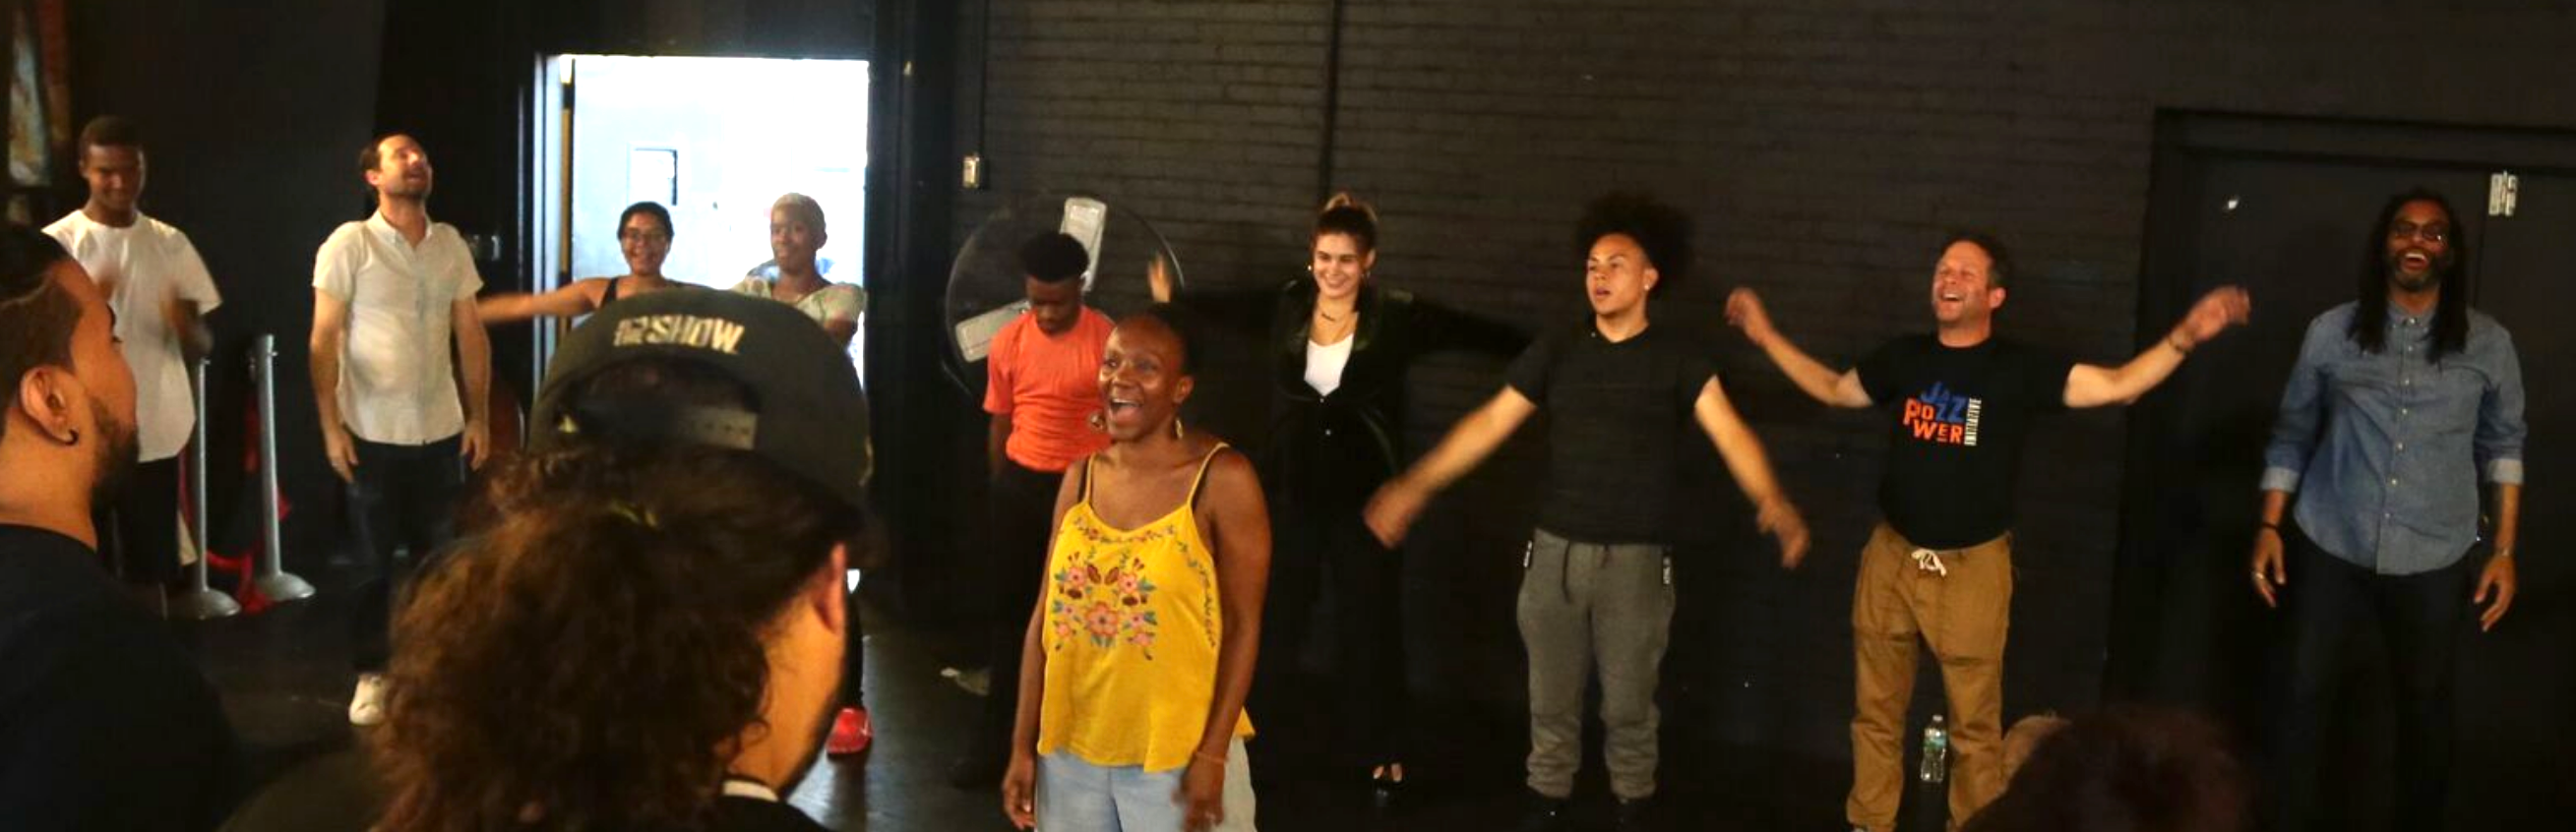 Mile-Long Opera Presents: A Voice and Movement Workshop for All